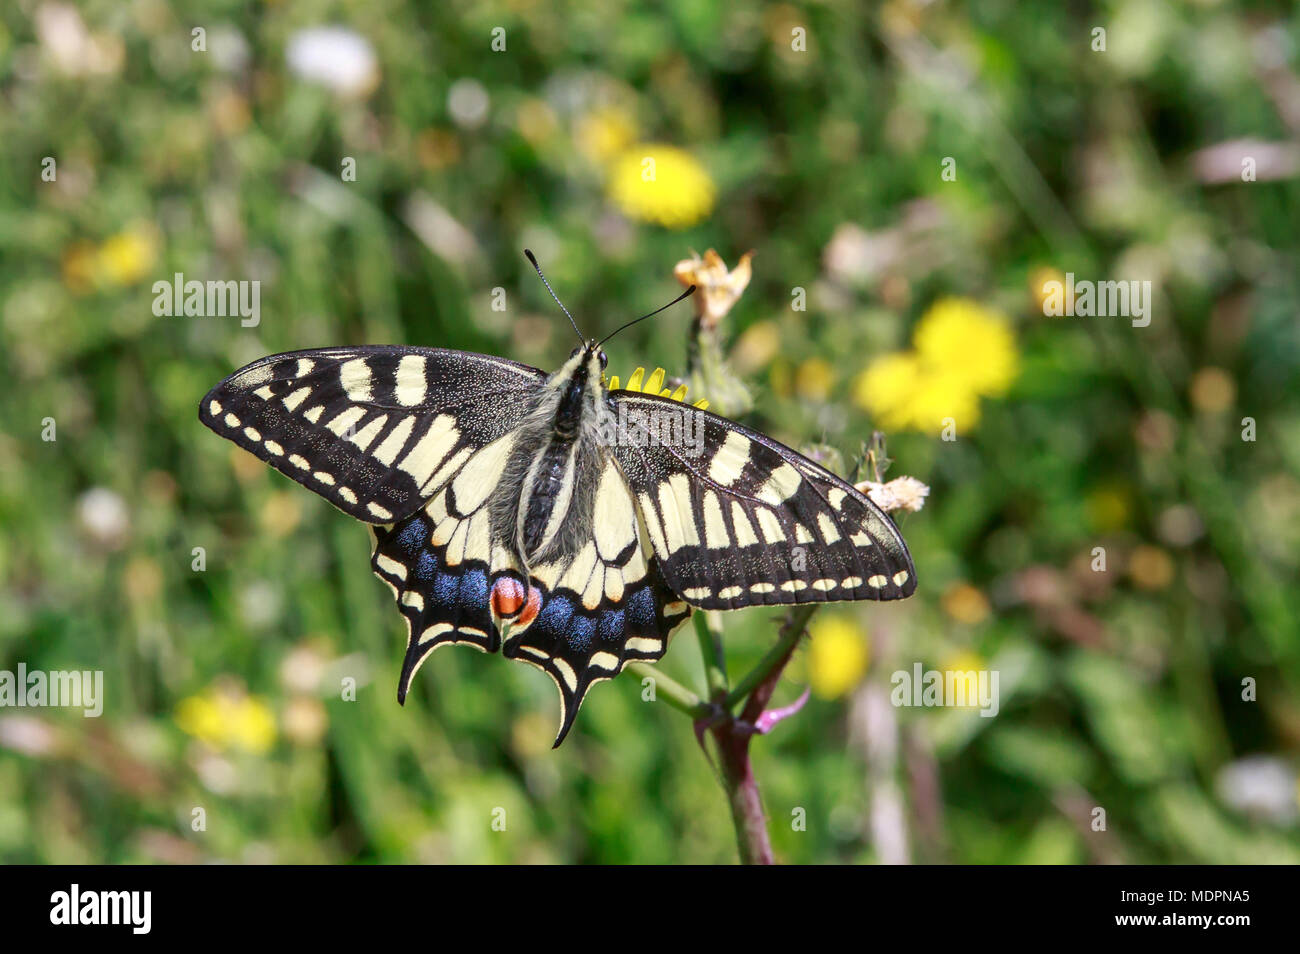 Papilio machaon, the Old World swallowtail, is a butterfly of the family Papilionidae. The butterfly is also known as the common yellow swallowtail. - Stock Image